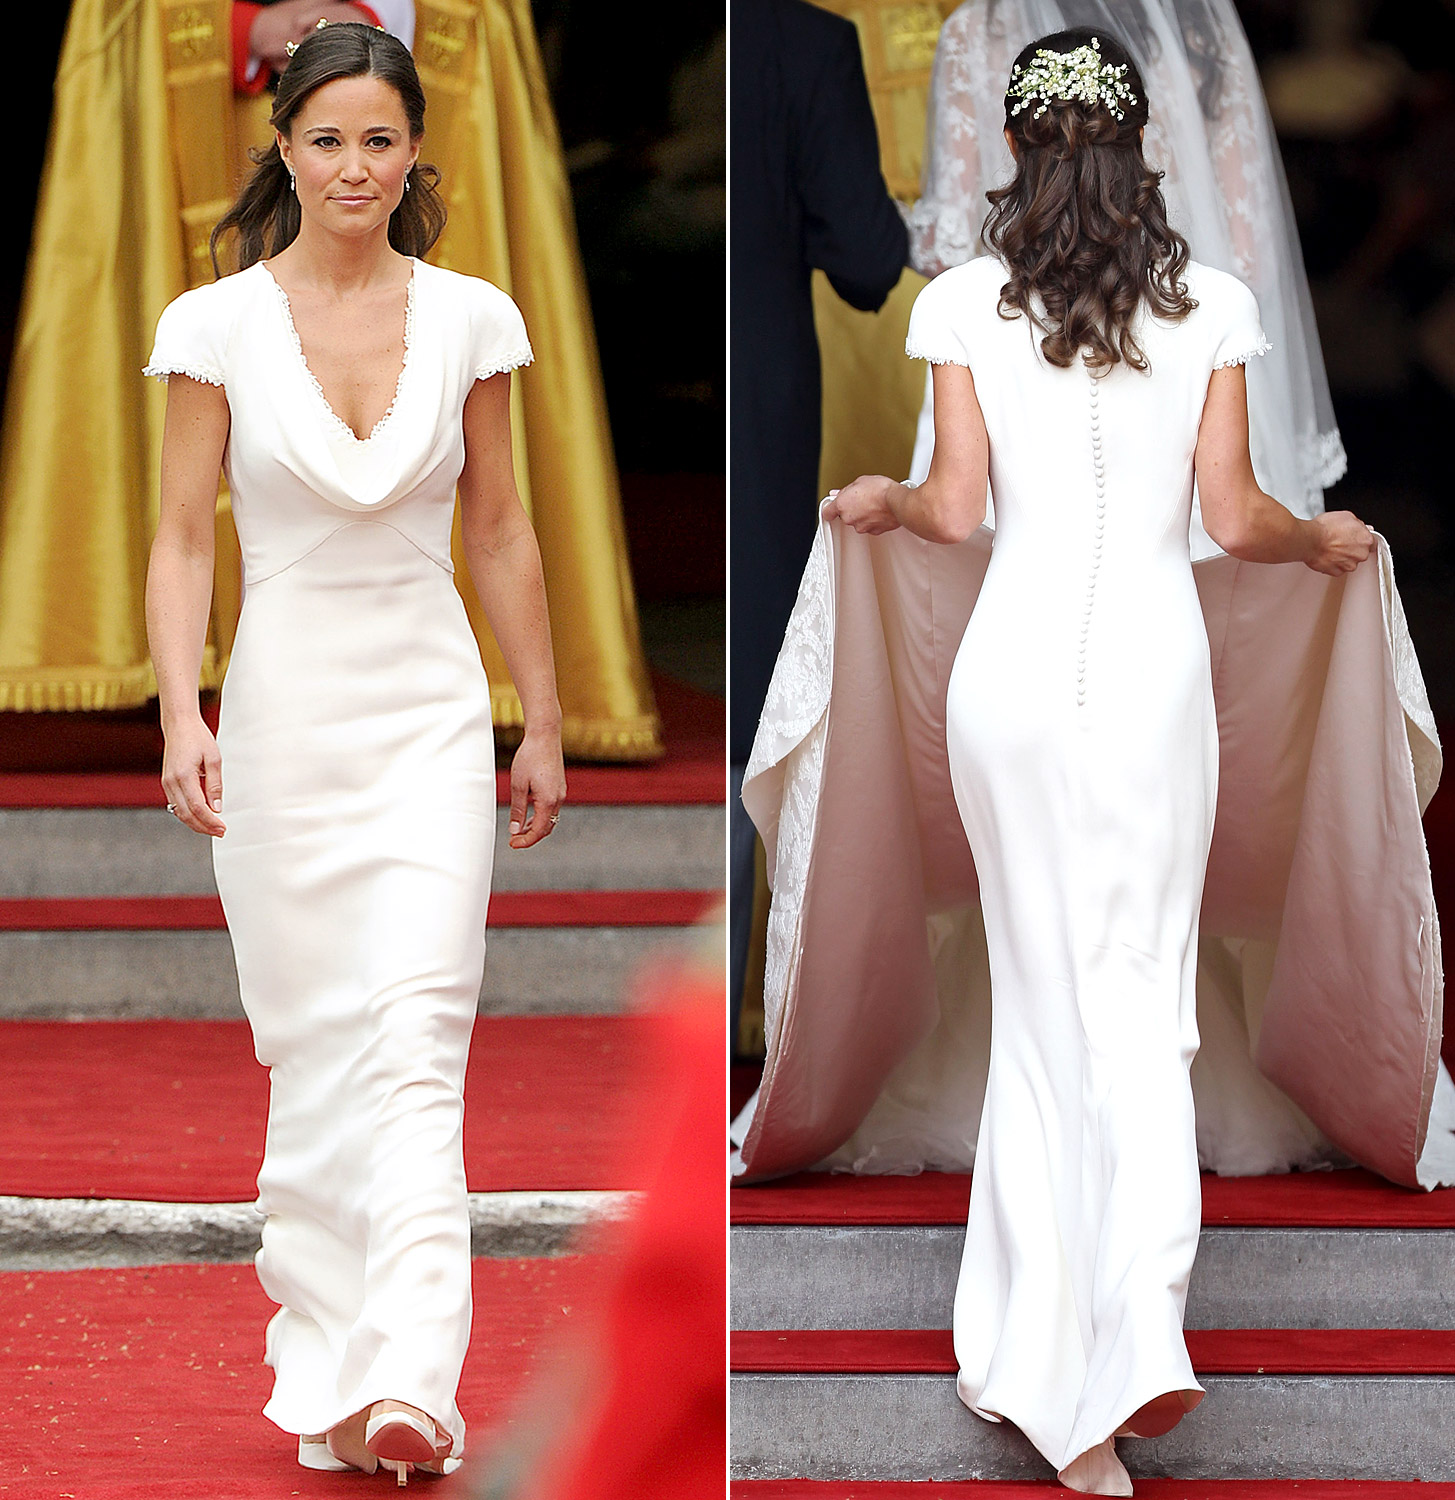 pictures Pippa Middleton and James Matthews